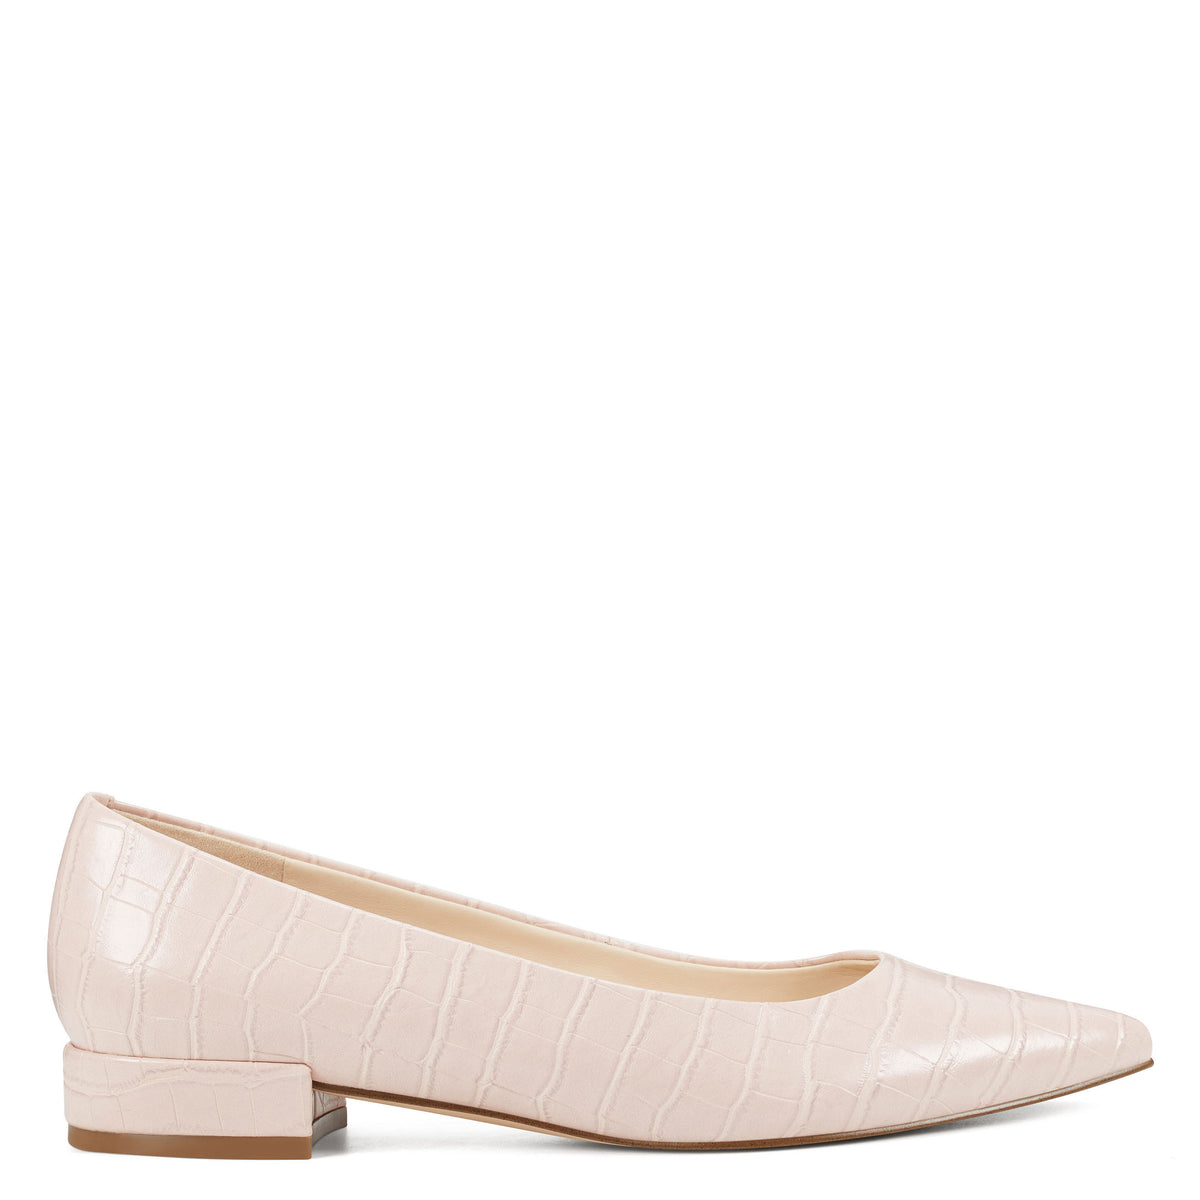 fayth-ballet-flats-in-light-pink-embossed-croco